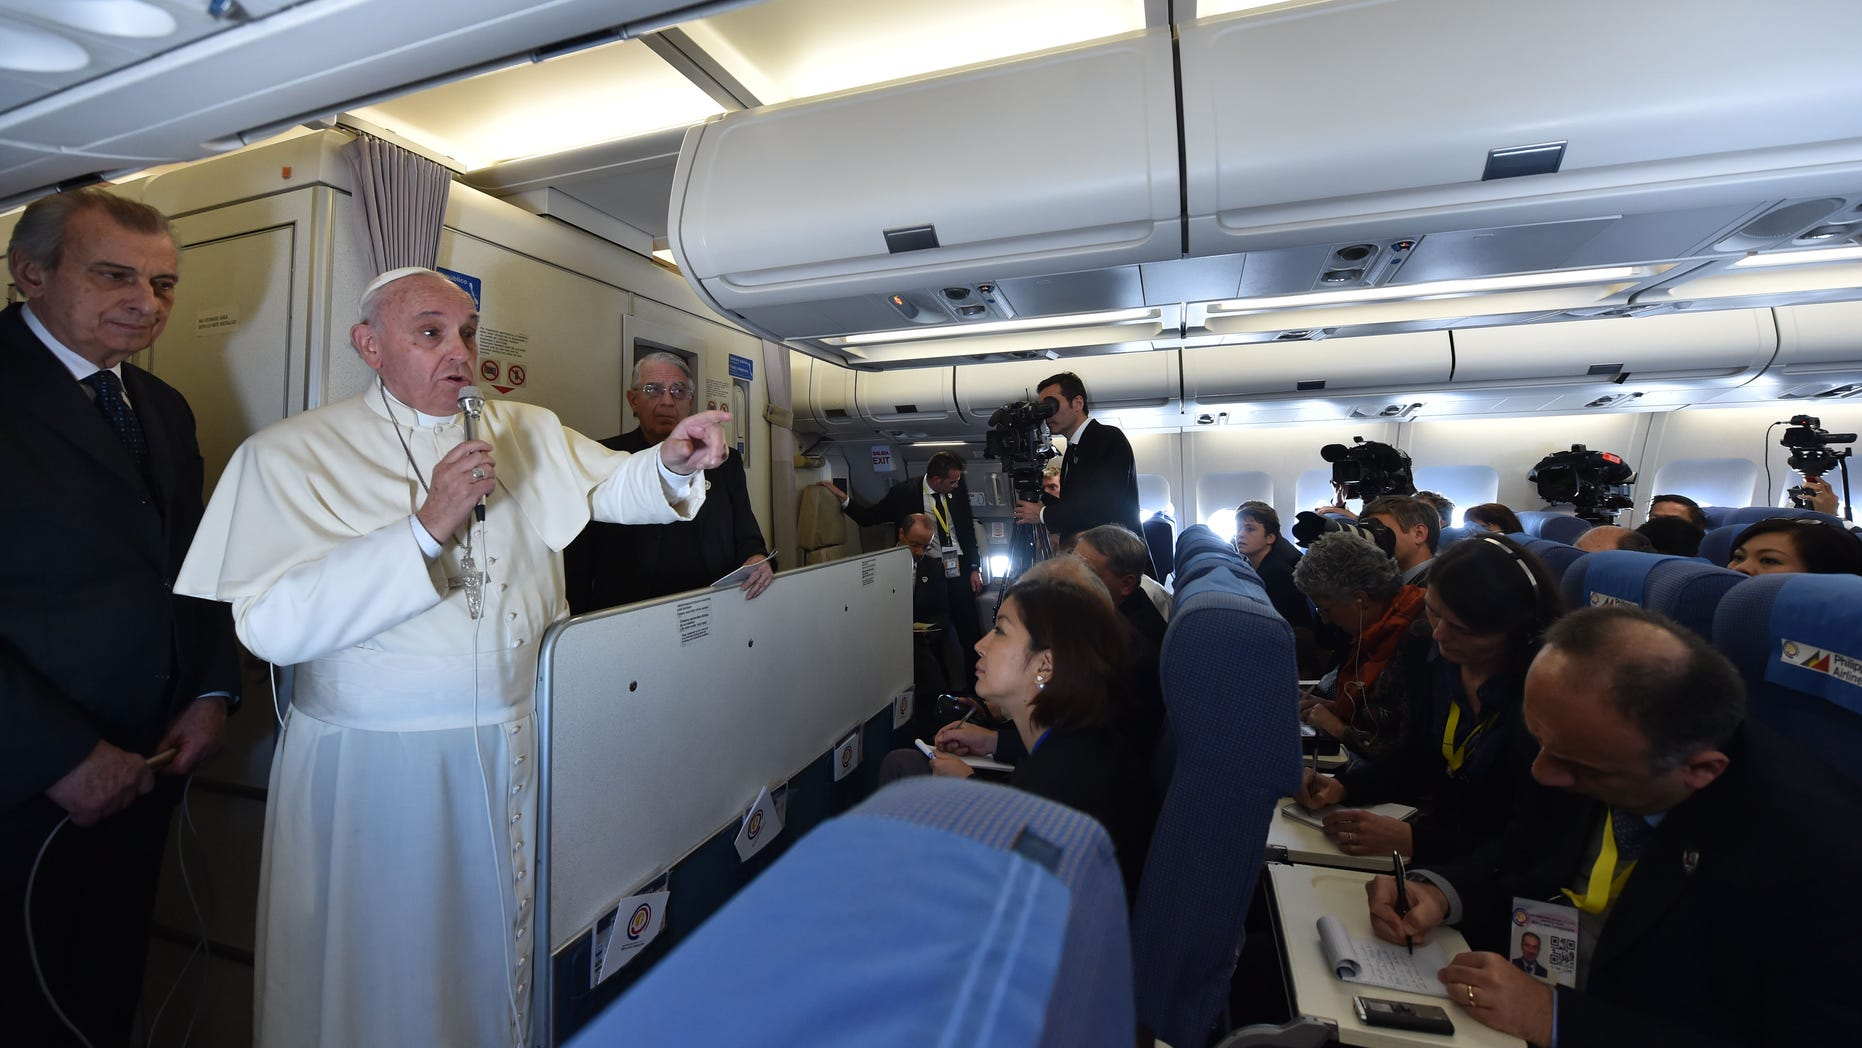 Jan. 19, 2015 - Pope Francis talks with journalists during his flight from Manila to Rome. Although the trips are unconfirmed, Francis is expected to visit Philadelphia, the White House, and the UN in New York in September.